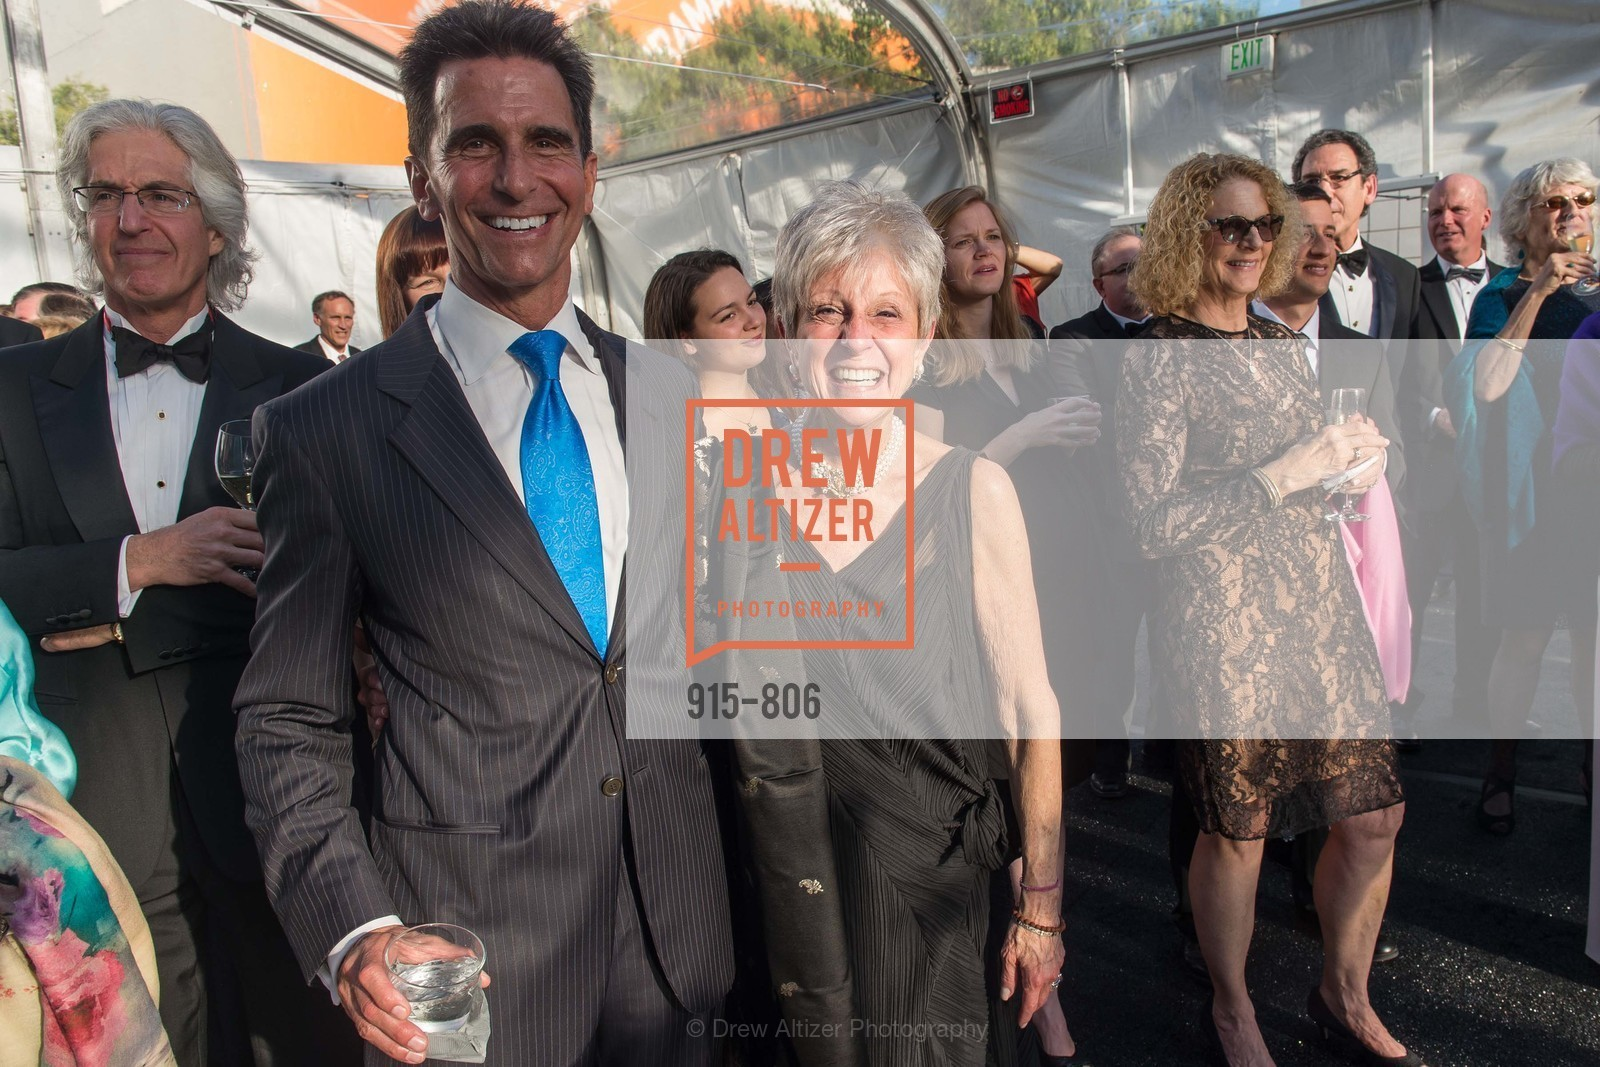 Mark Leno, Nancy Livingston, A.C.T. Gala Come Get Stranded, US, April 26th, 2015,Drew Altizer, Drew Altizer Photography, full-service event agency, private events, San Francisco photographer, photographer California